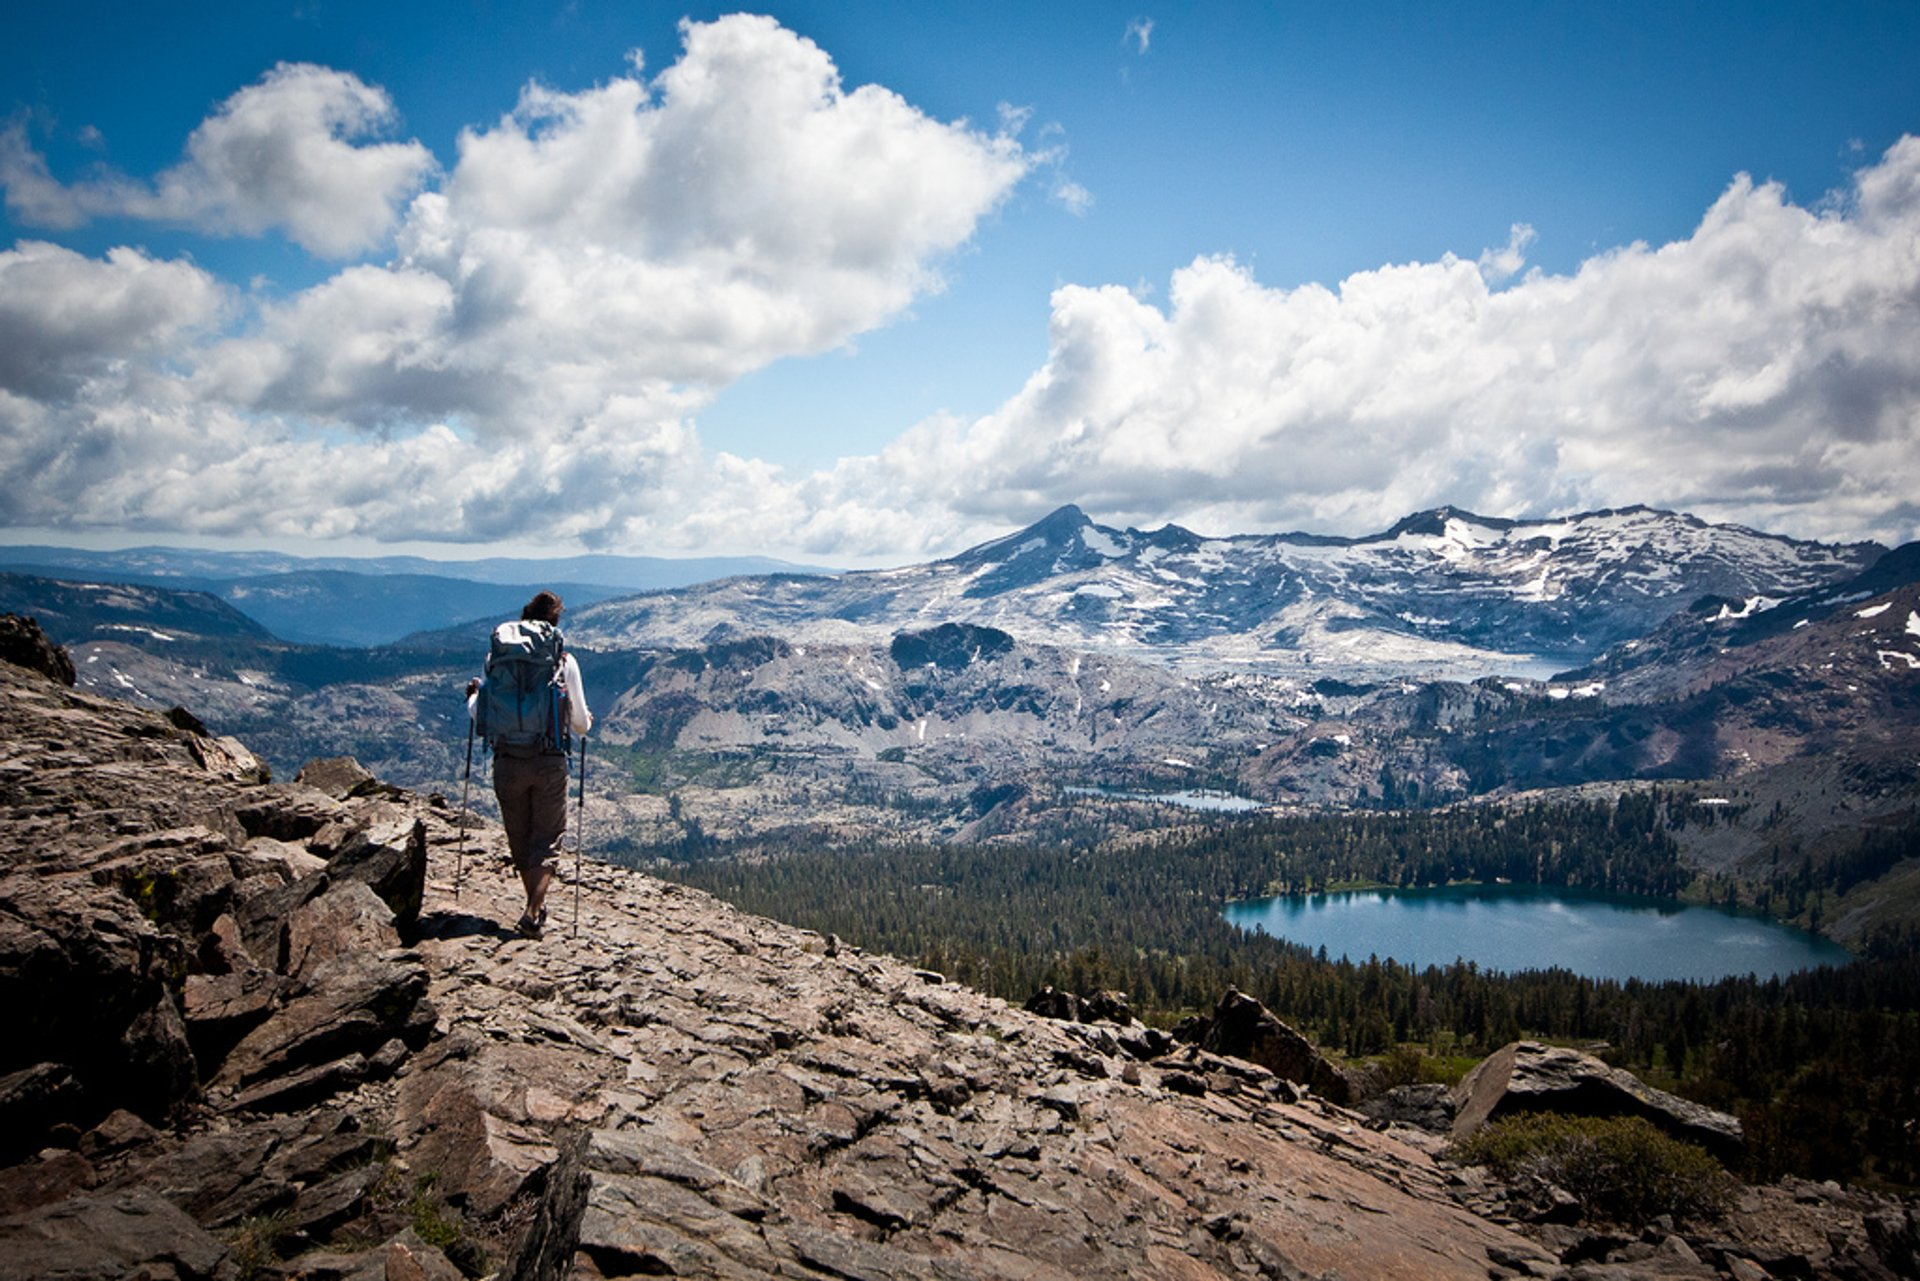 Mount Tallac in California 2020 - Best Time